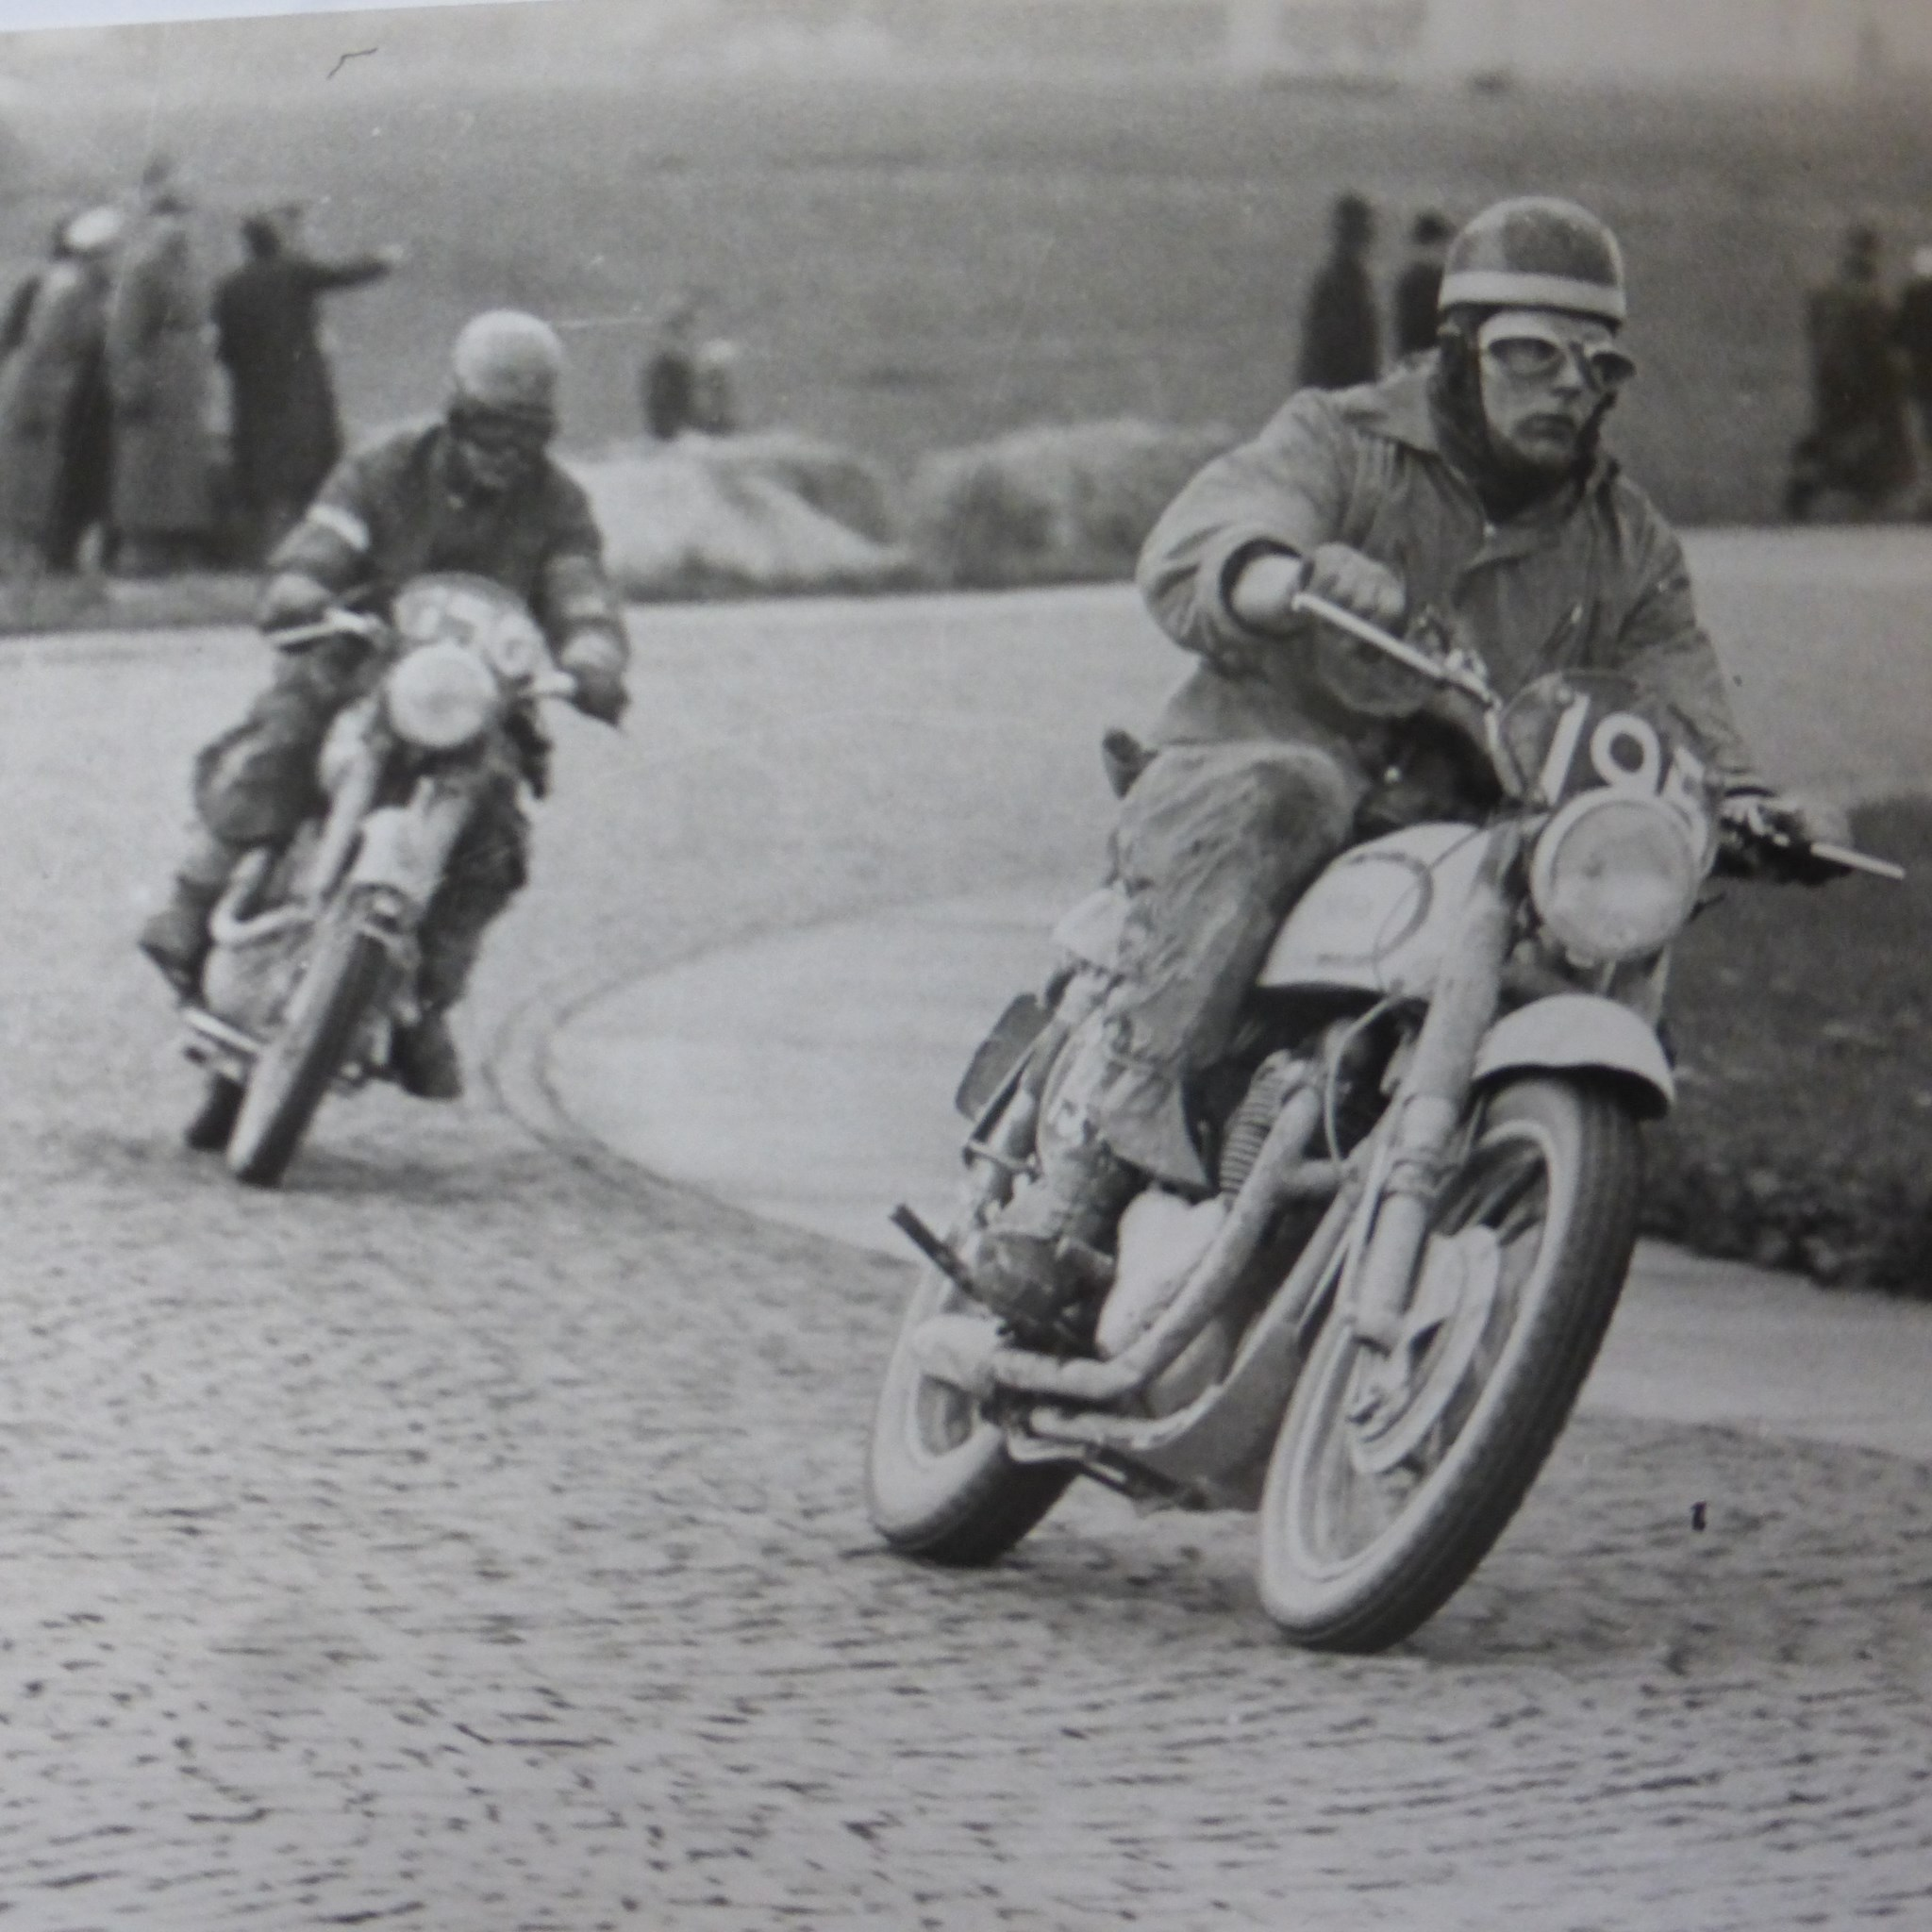 Don racing in Austria in the International six days trial. 1952